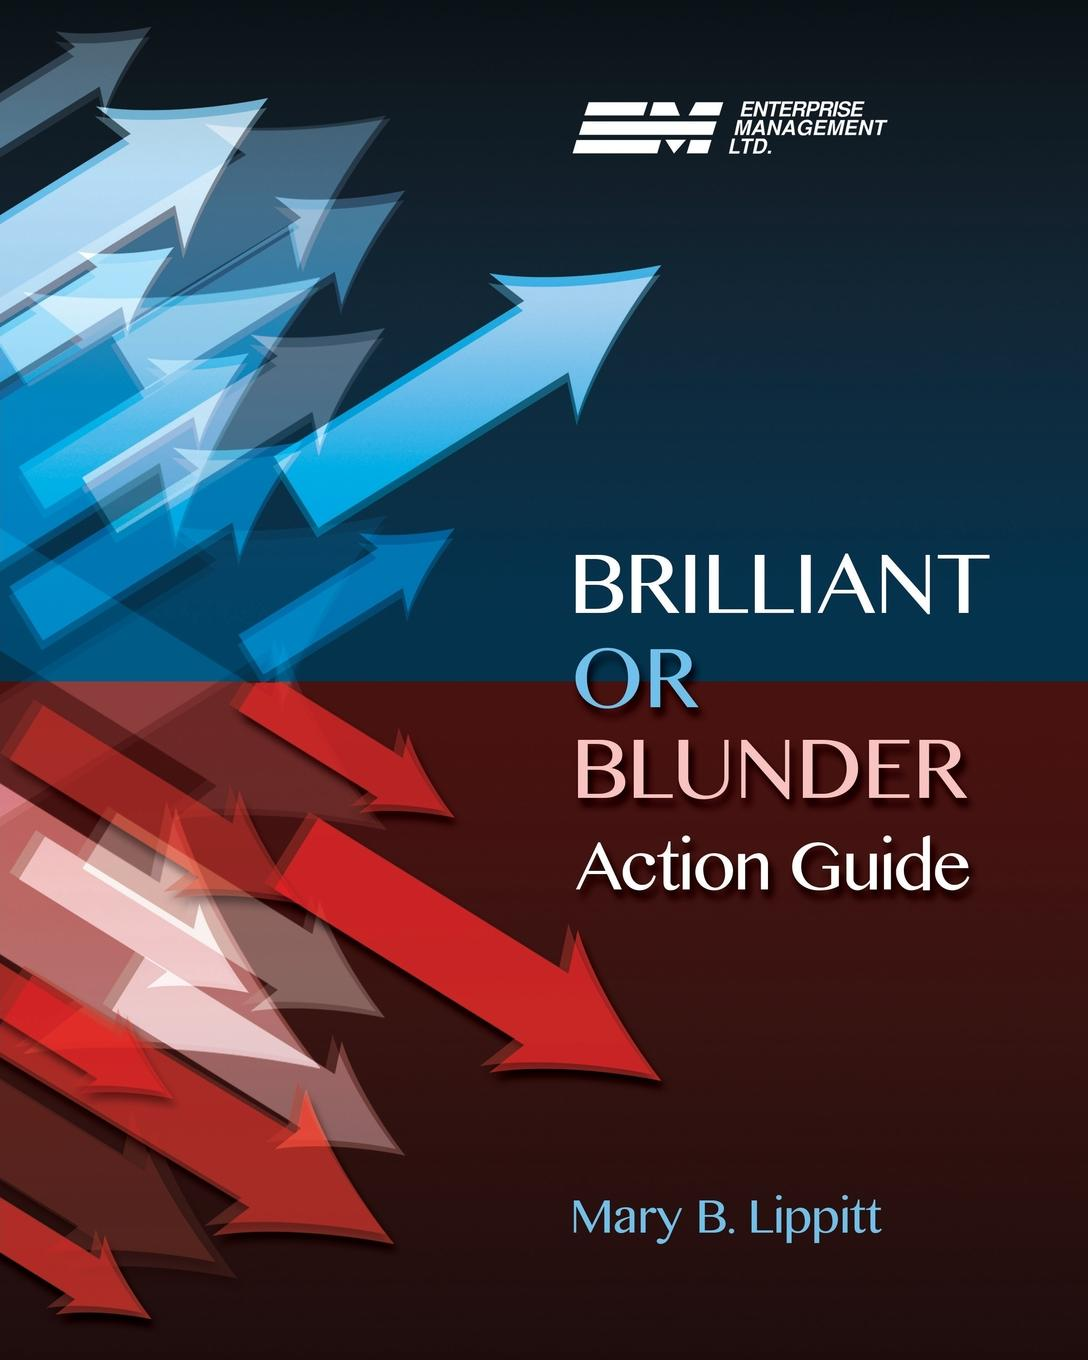 Brilliant or Blunder Action Guide Brilliant or Blunder Action Guide offers an effective practical...